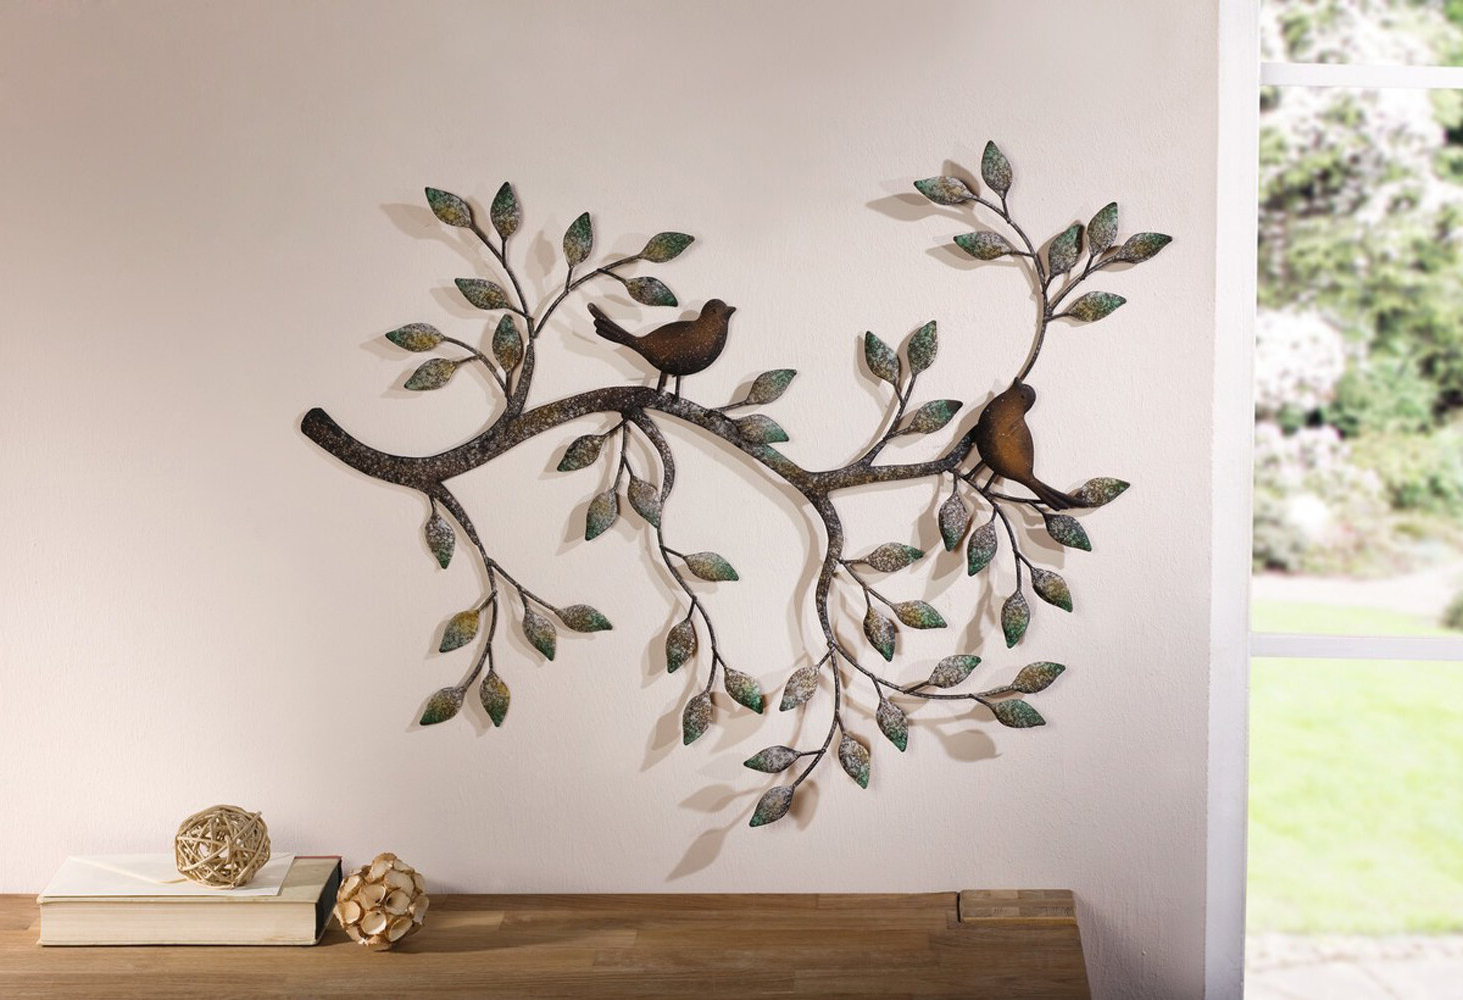 Most Recent Birds On A Wire Wall Décor By Winston Porter Inside Branches With Birds Metal Wall Décor (View 4 of 20)